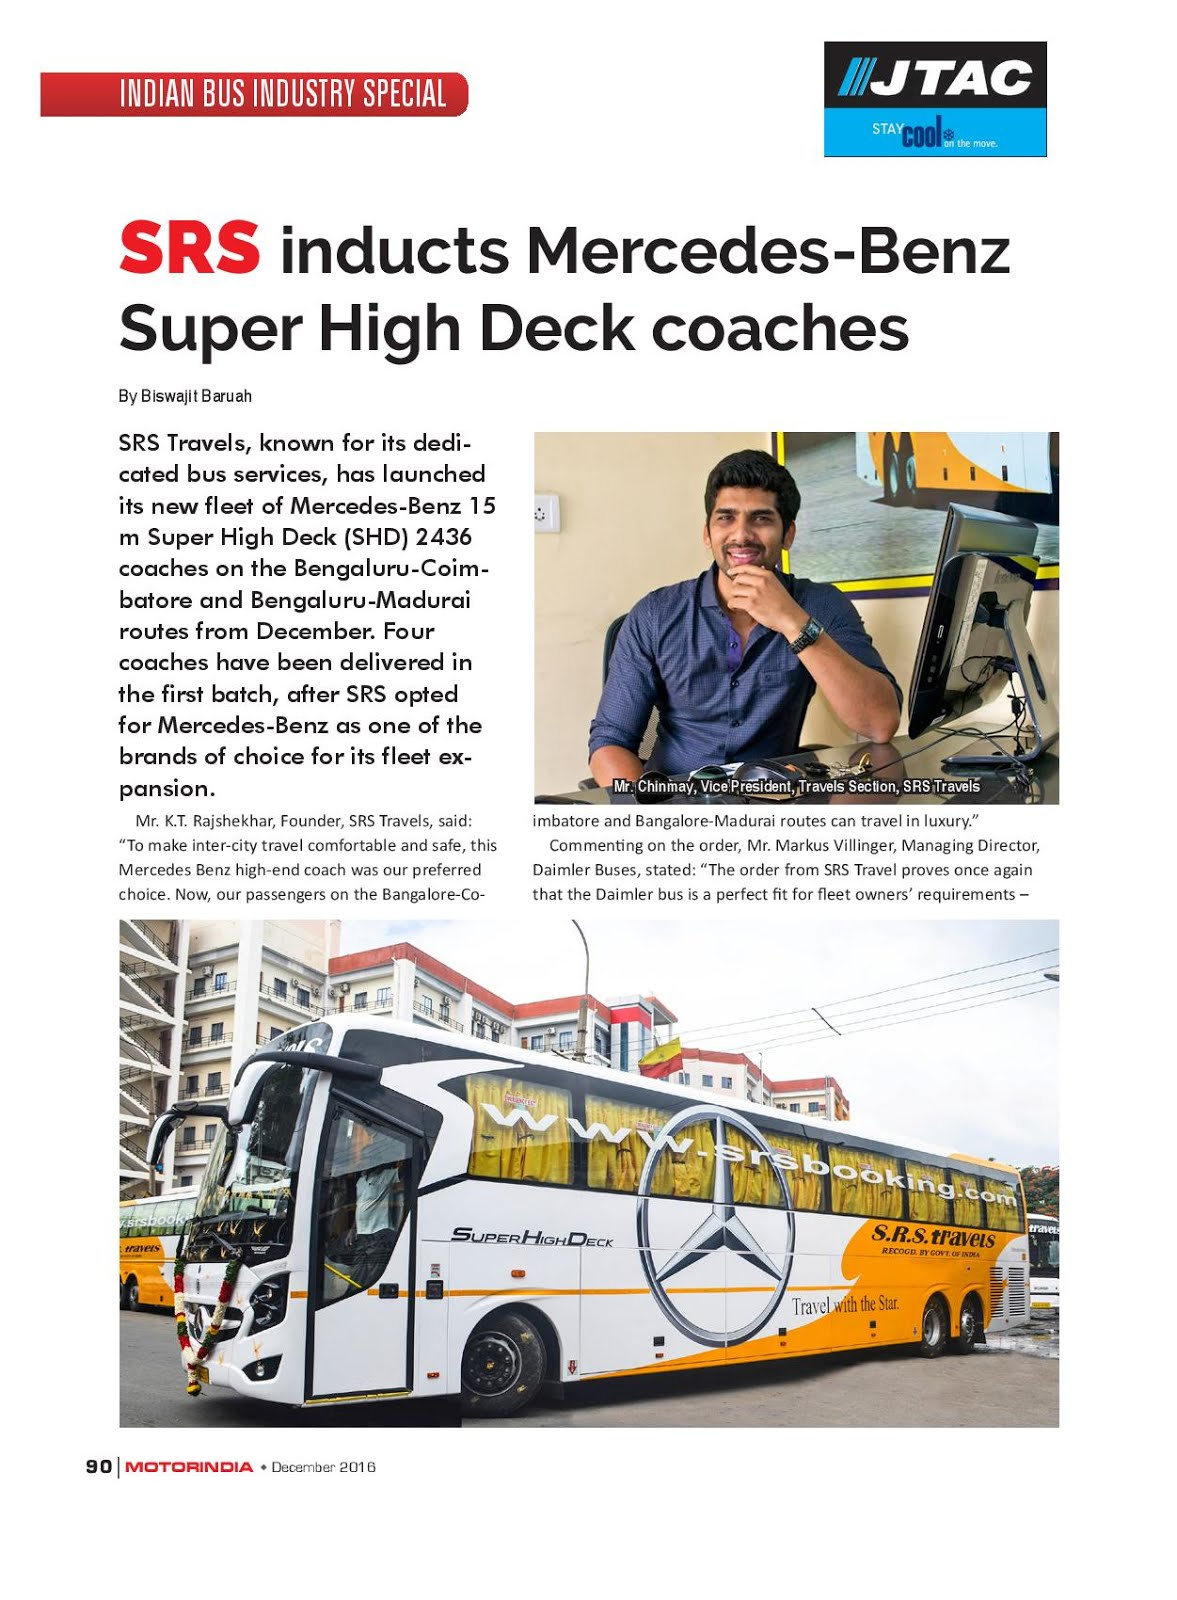 MOTOR INDIA ARTICLE 8 : SRS TRAVELS